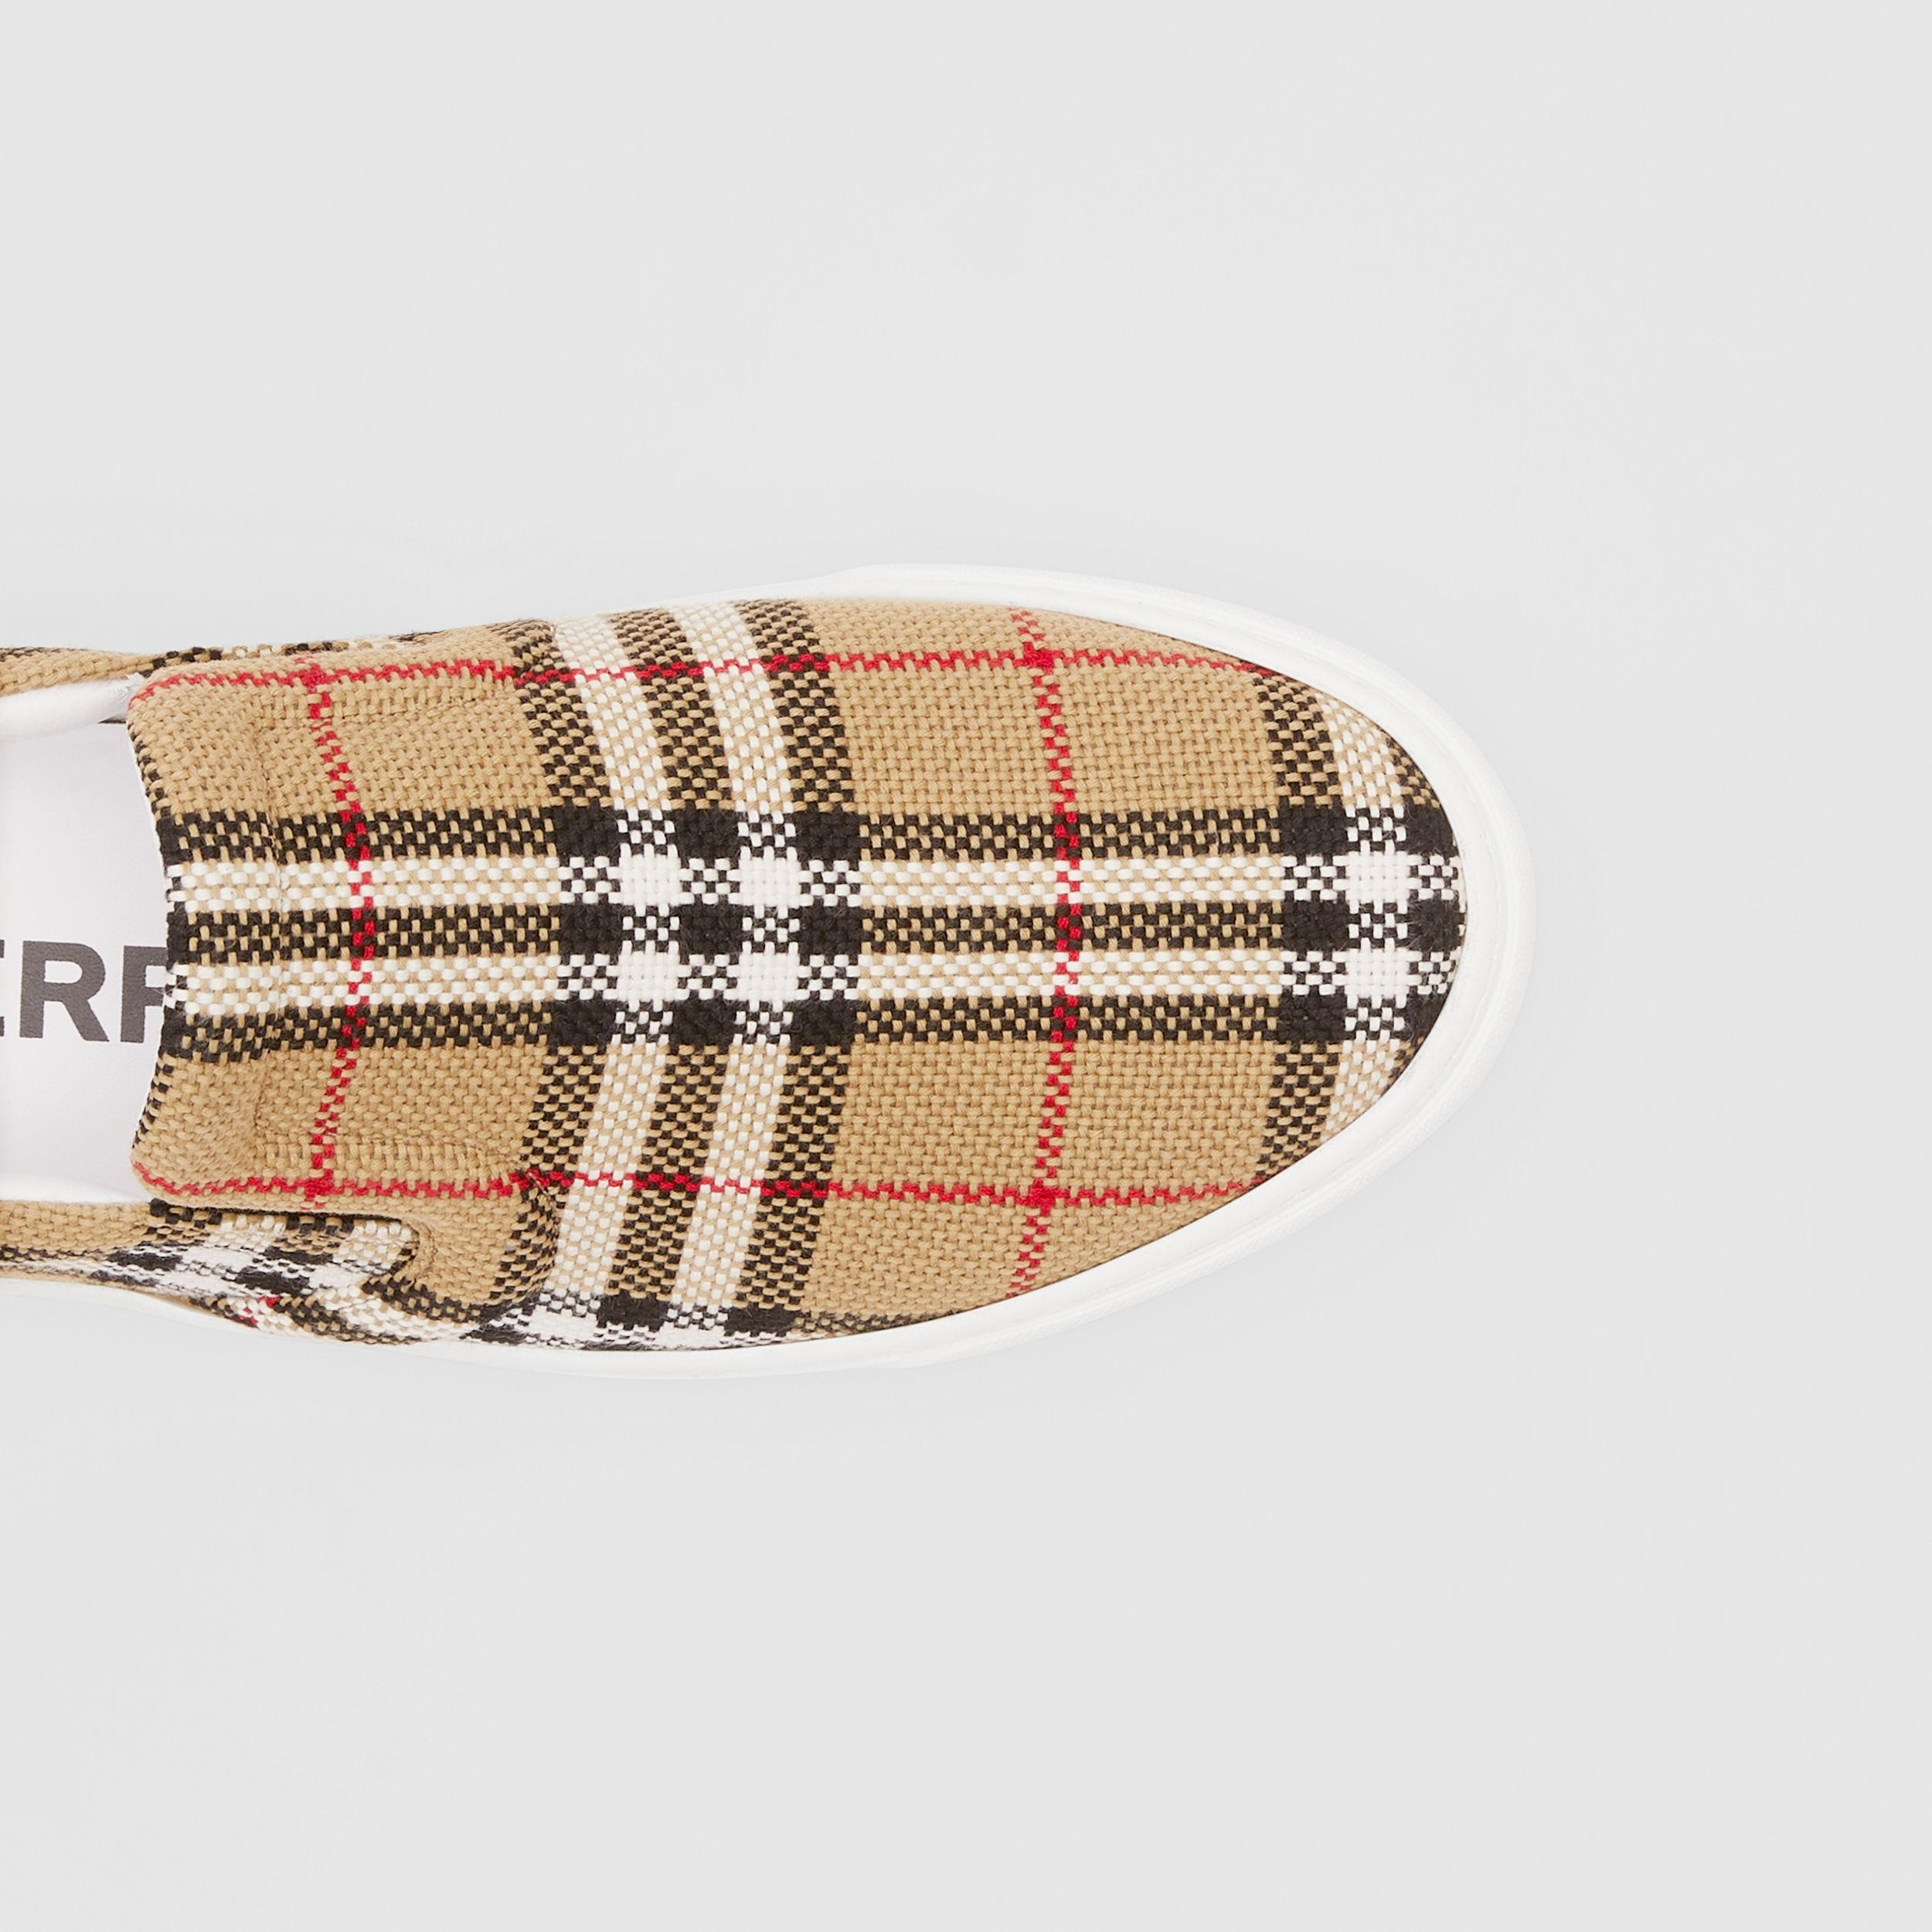 Bio-based Sole Latticed Cotton Slip-on Sneakers in Archive Beige - Men | Burberry - 2